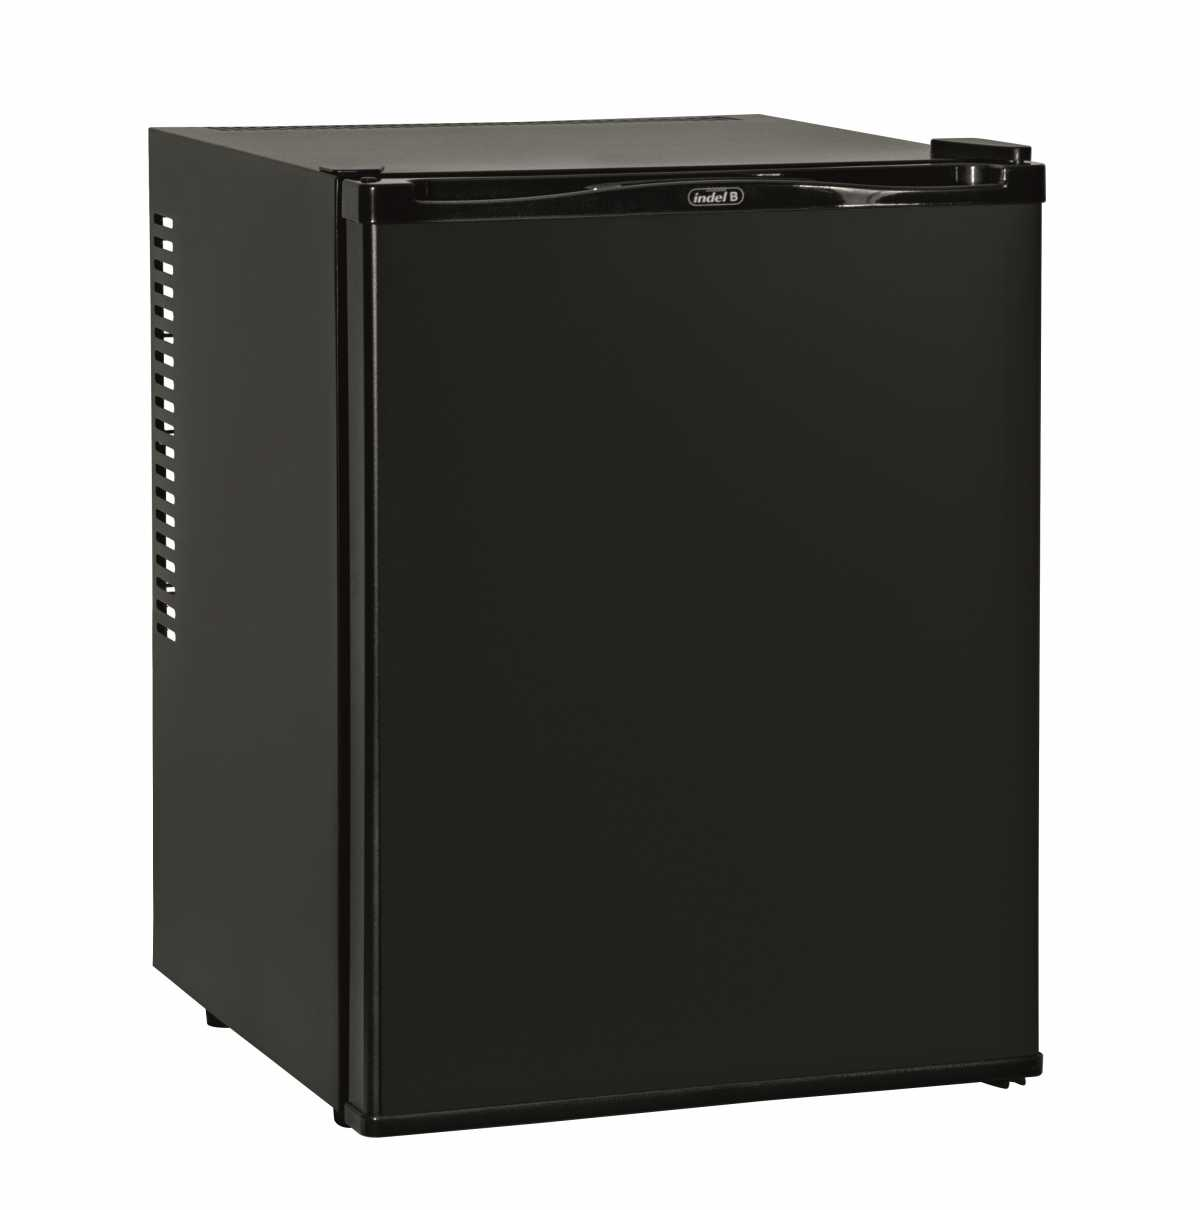 INDEL B Breeze T40 Minibar